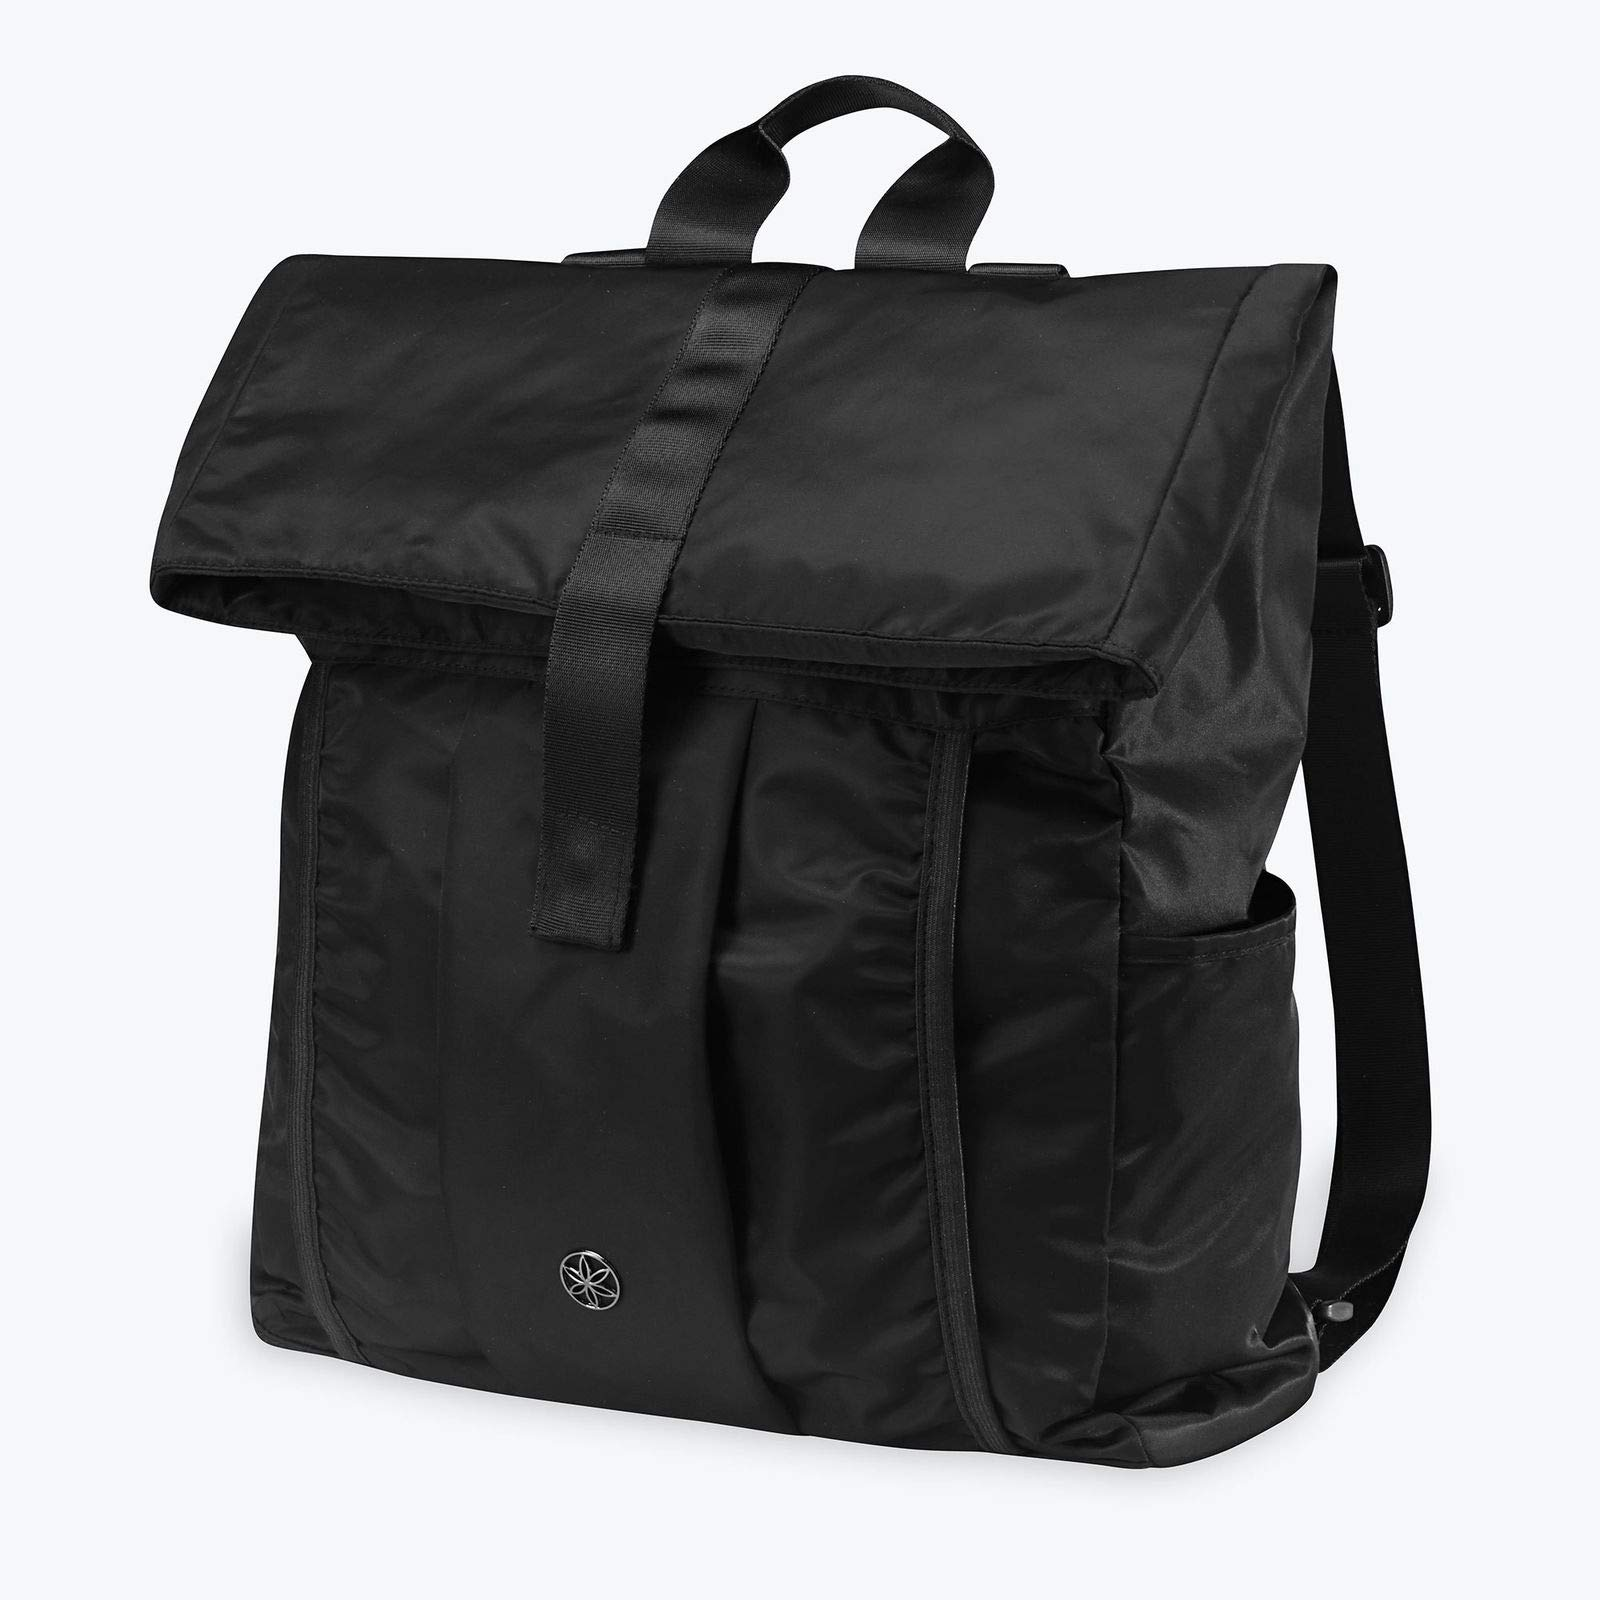 MRT SUPPLY Hold Everything Pilates Yoga Mat Fitness Carry Travel Bag Backpack, Black with Ebook